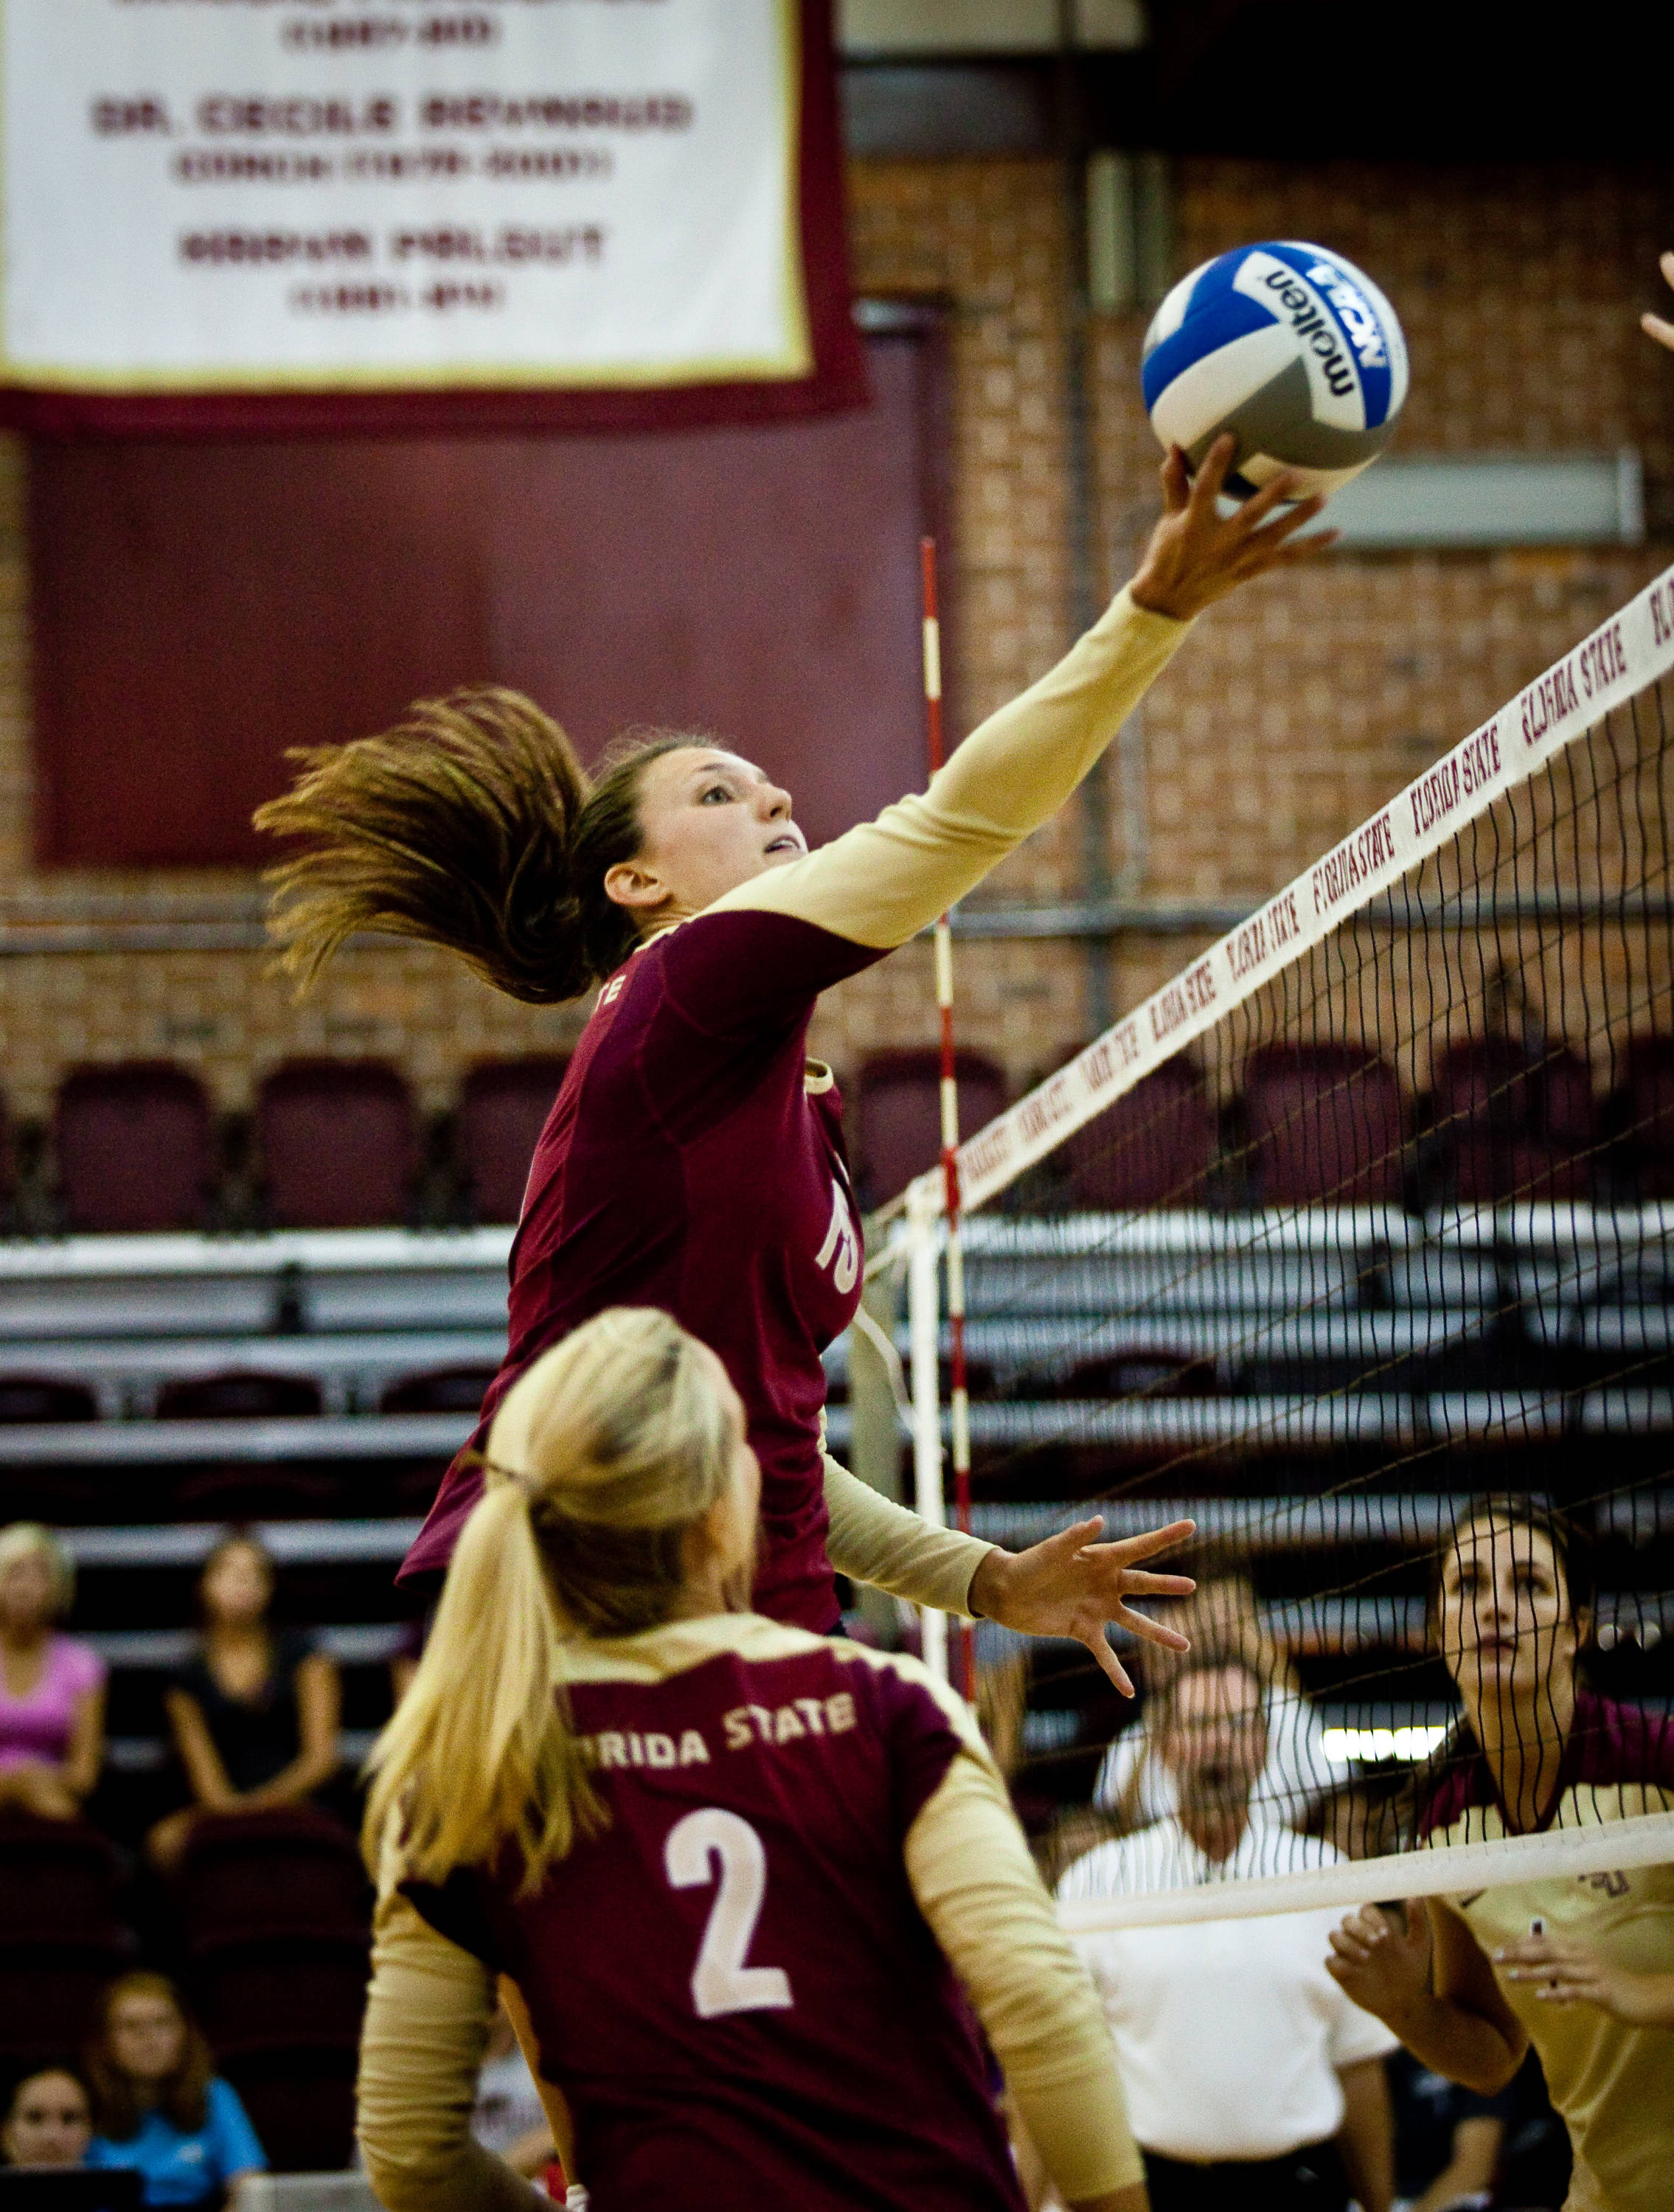 Amanda Saxton (15) tries to slip one over the net.